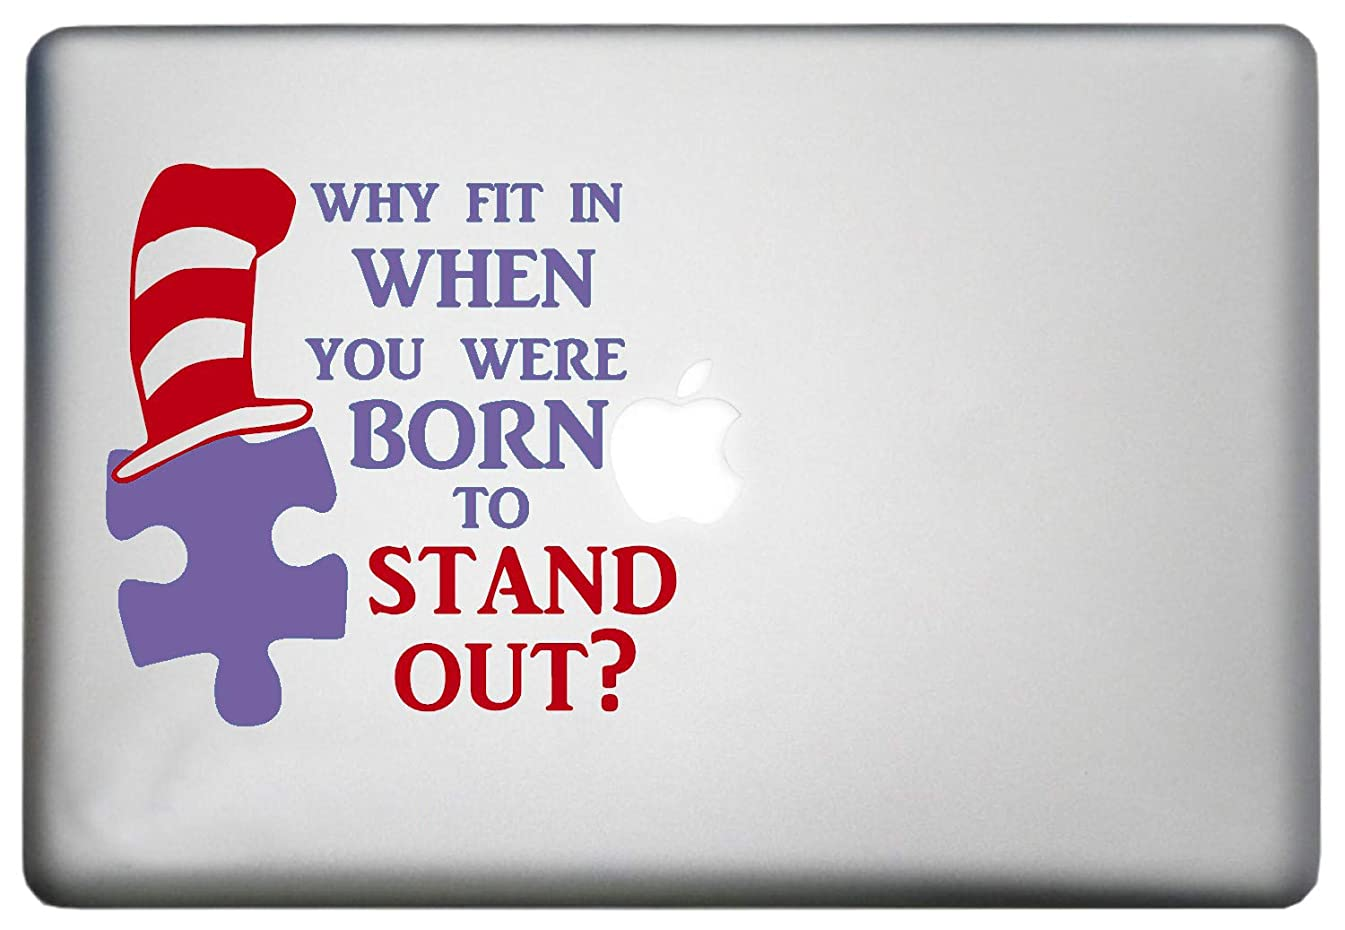 Autism Awareness Sticker MacBook Pro Vinyl Decal is a is a Dr. Seuss Mac Decal. Laptop Sizes 11, 12, 13 and 15 inch. The Hat & Stand Out is Always RED. Many Colors-Purple